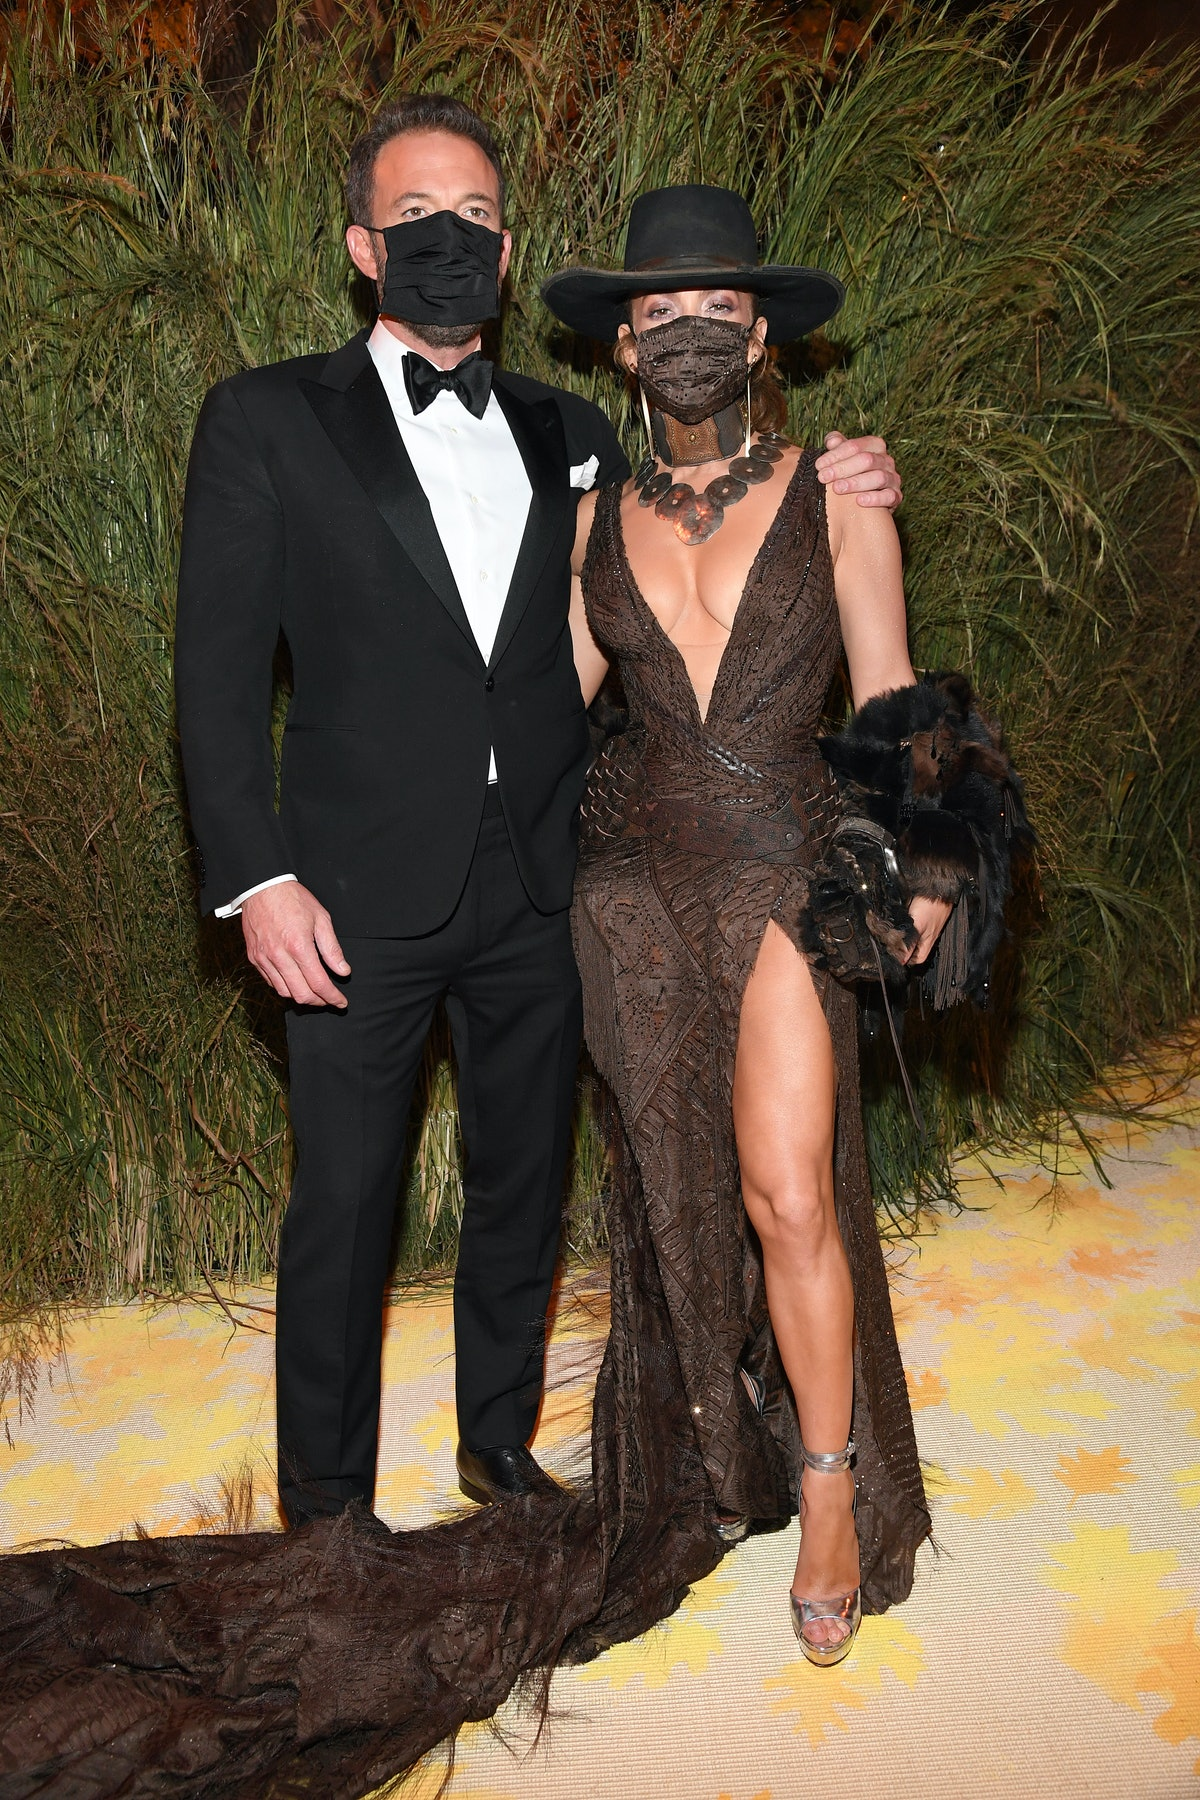 Jennifer Lopez and Ben Affleck's masked kiss at the Met Gala says a lot about their relationship.